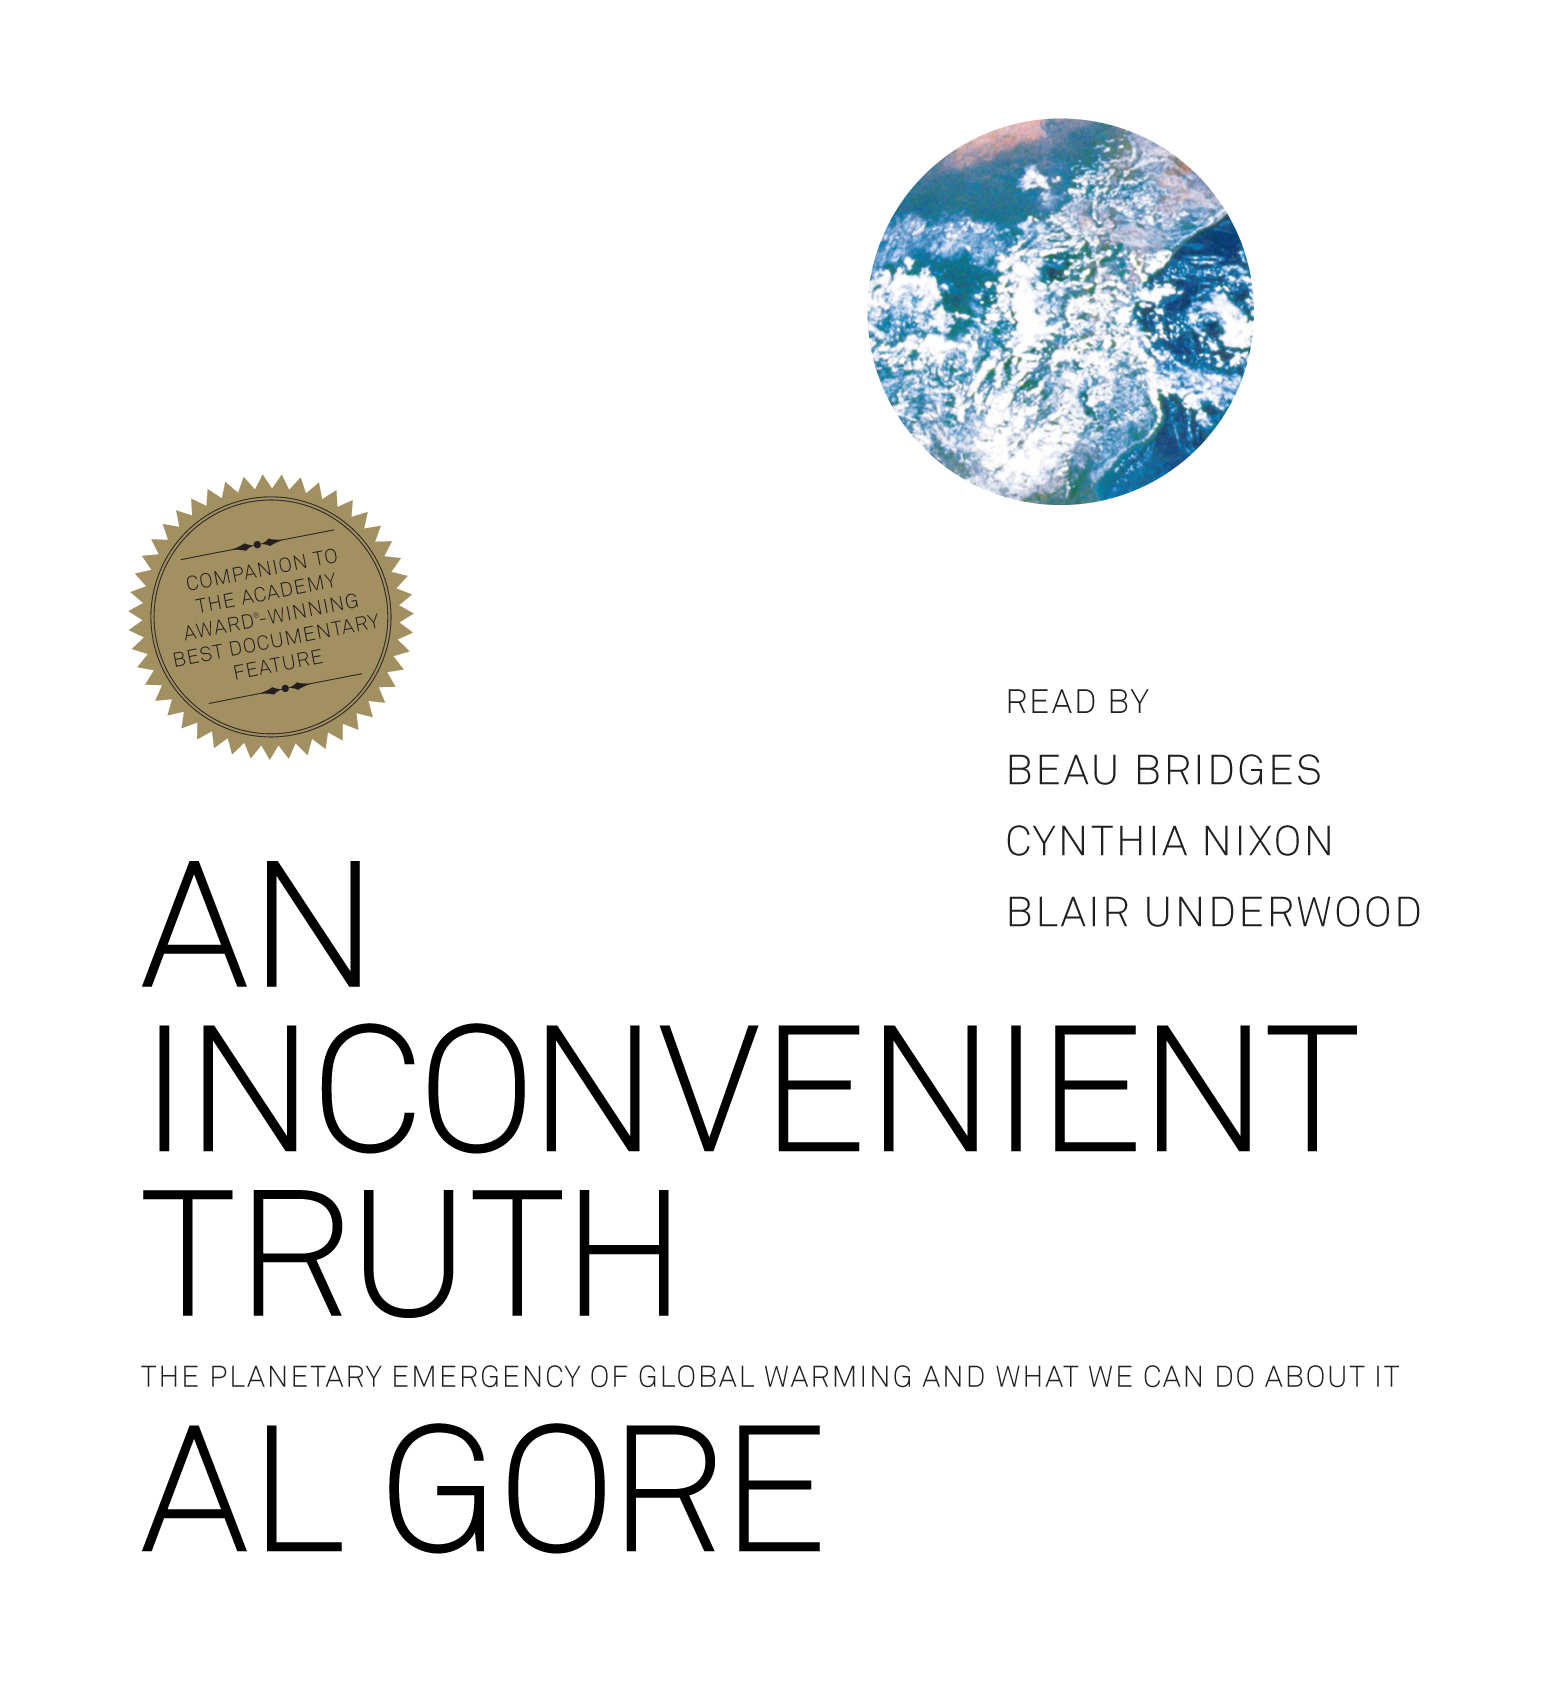 Worksheets An Inconvenient Truth New York Science Teacher an inconvenient truth audiobook by al gore beau bridges cynthia cvr9780743572033 9780743572033 hr truth